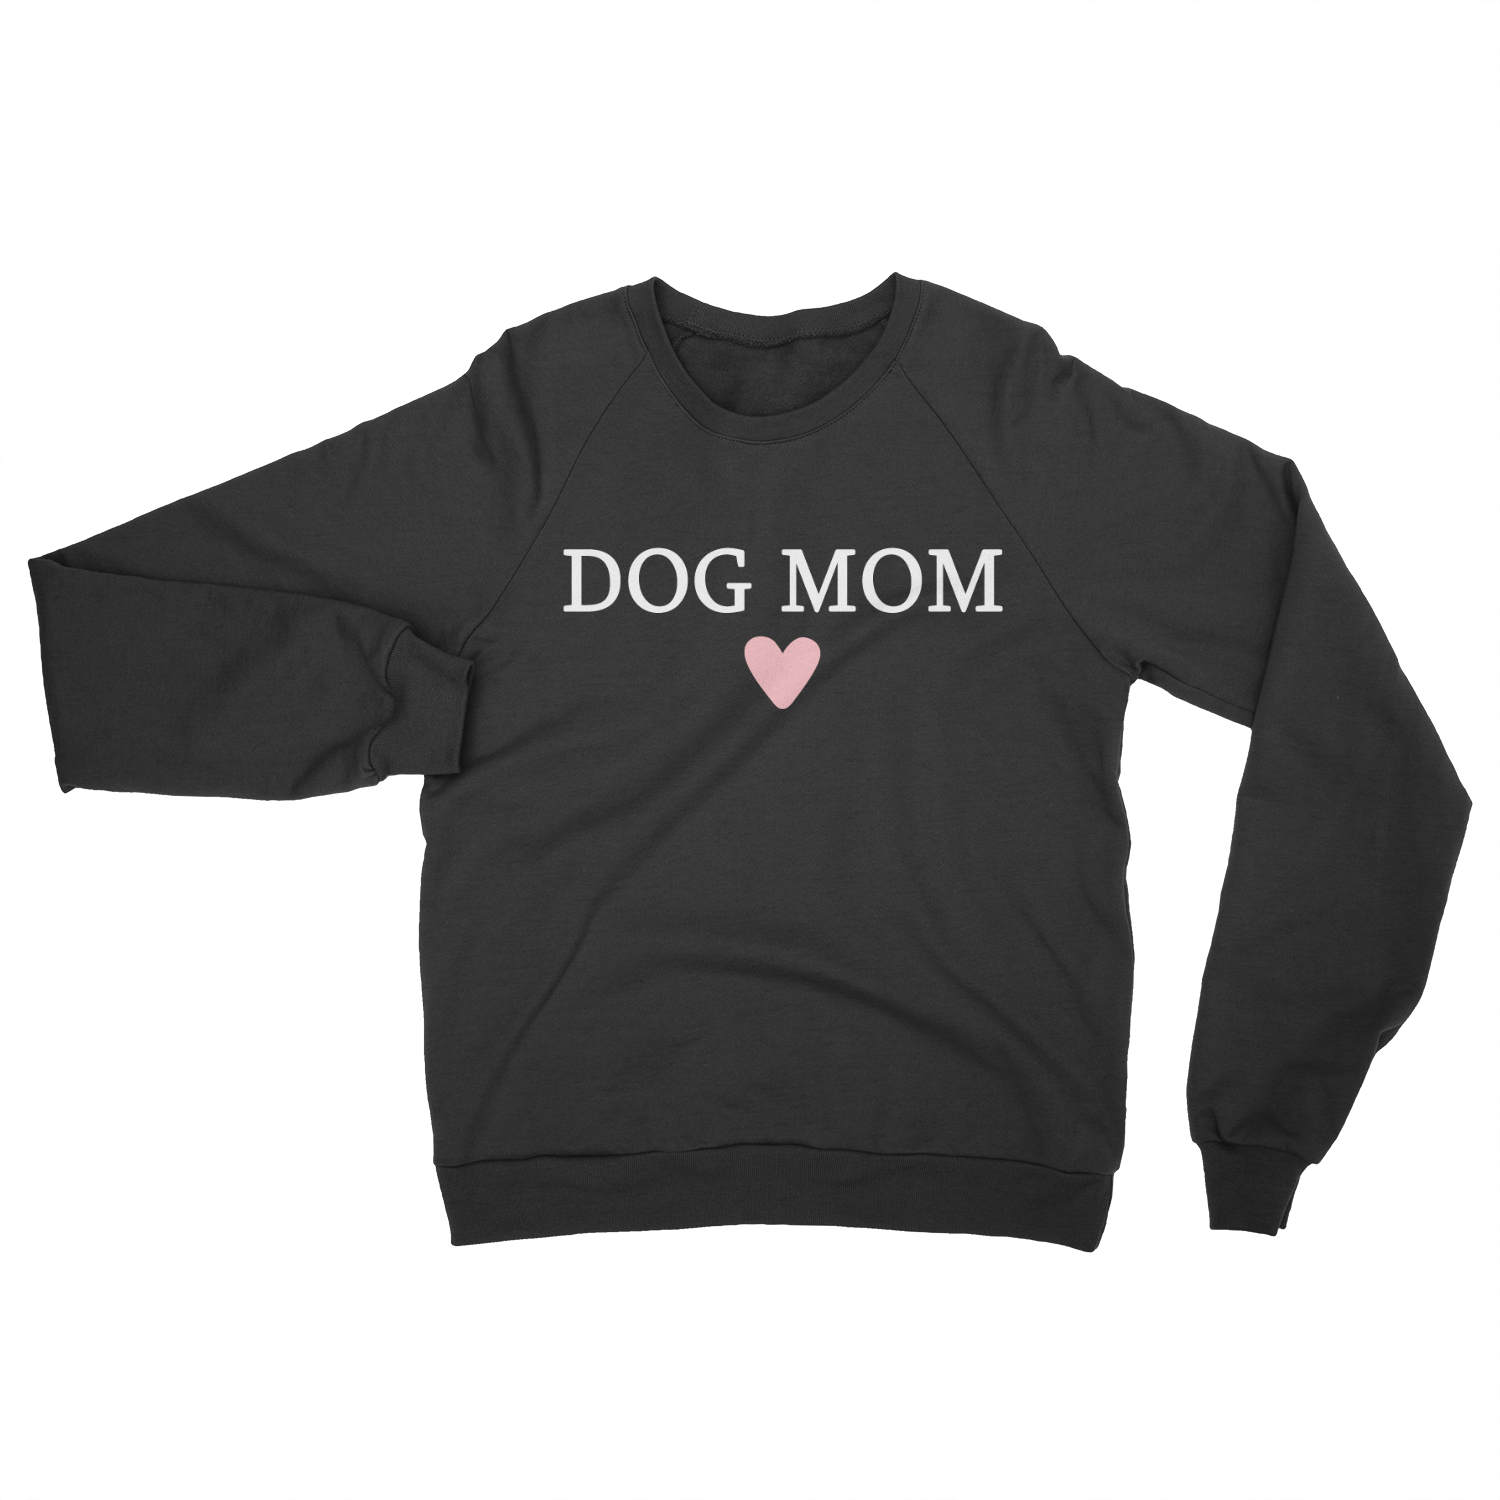 Dog Mom Crewneck - CHARCOAL